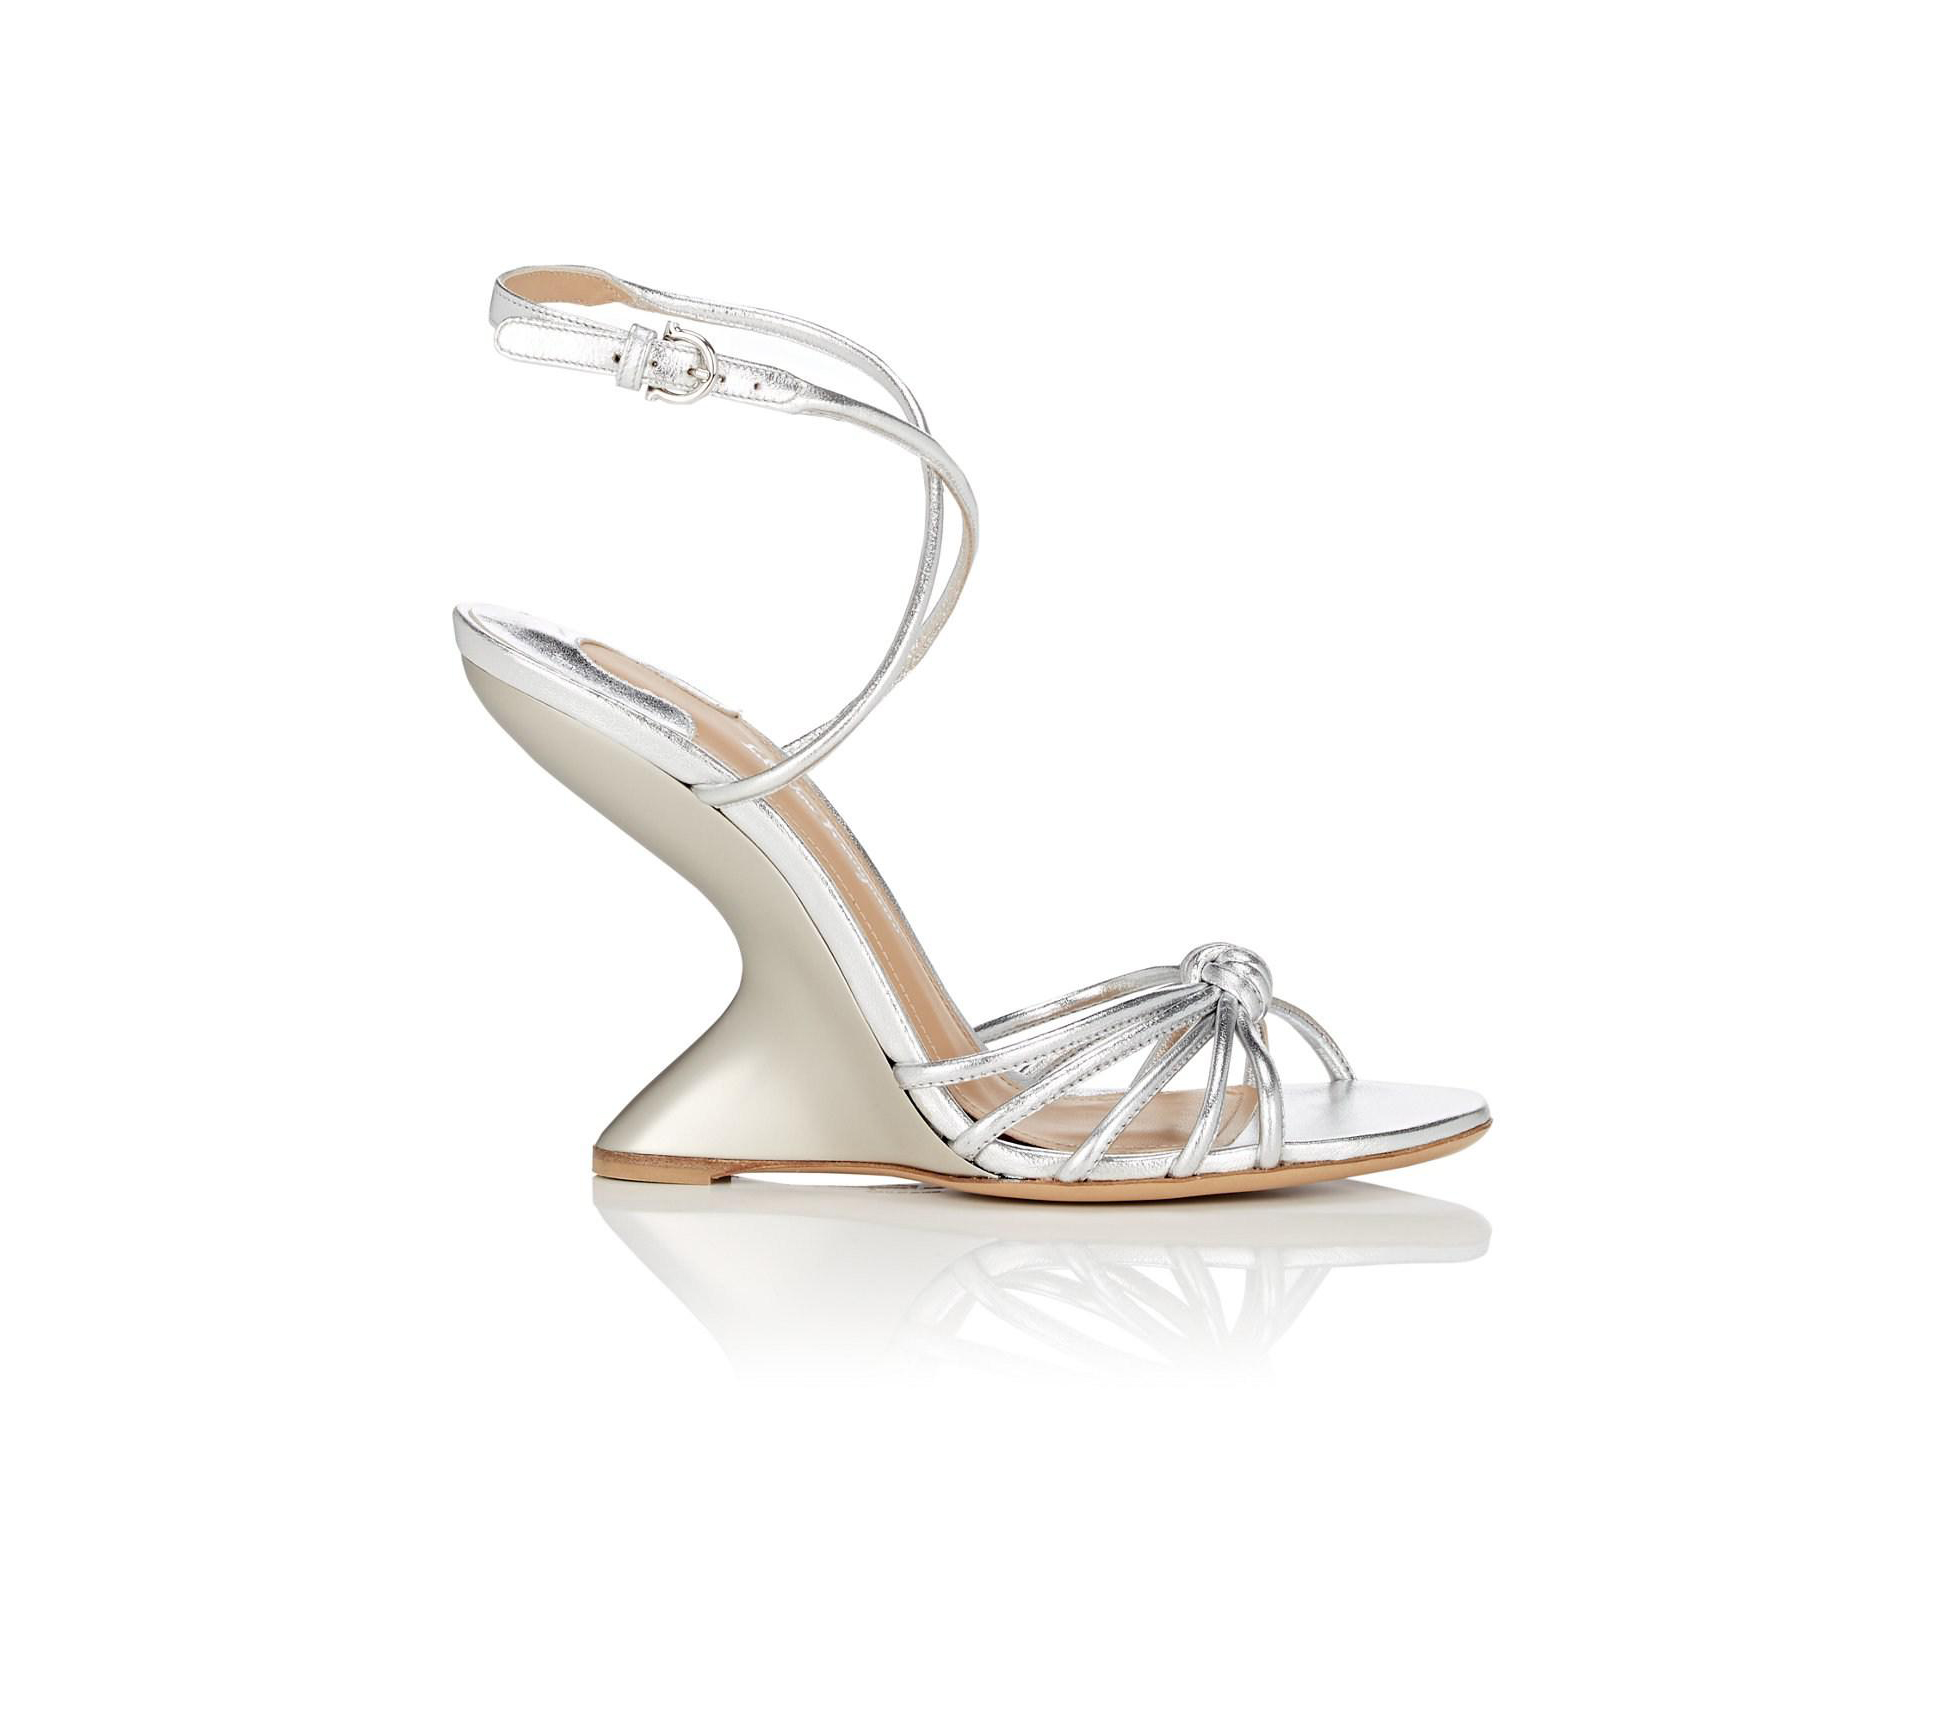 wedding wedges silver ankle-strap sandals